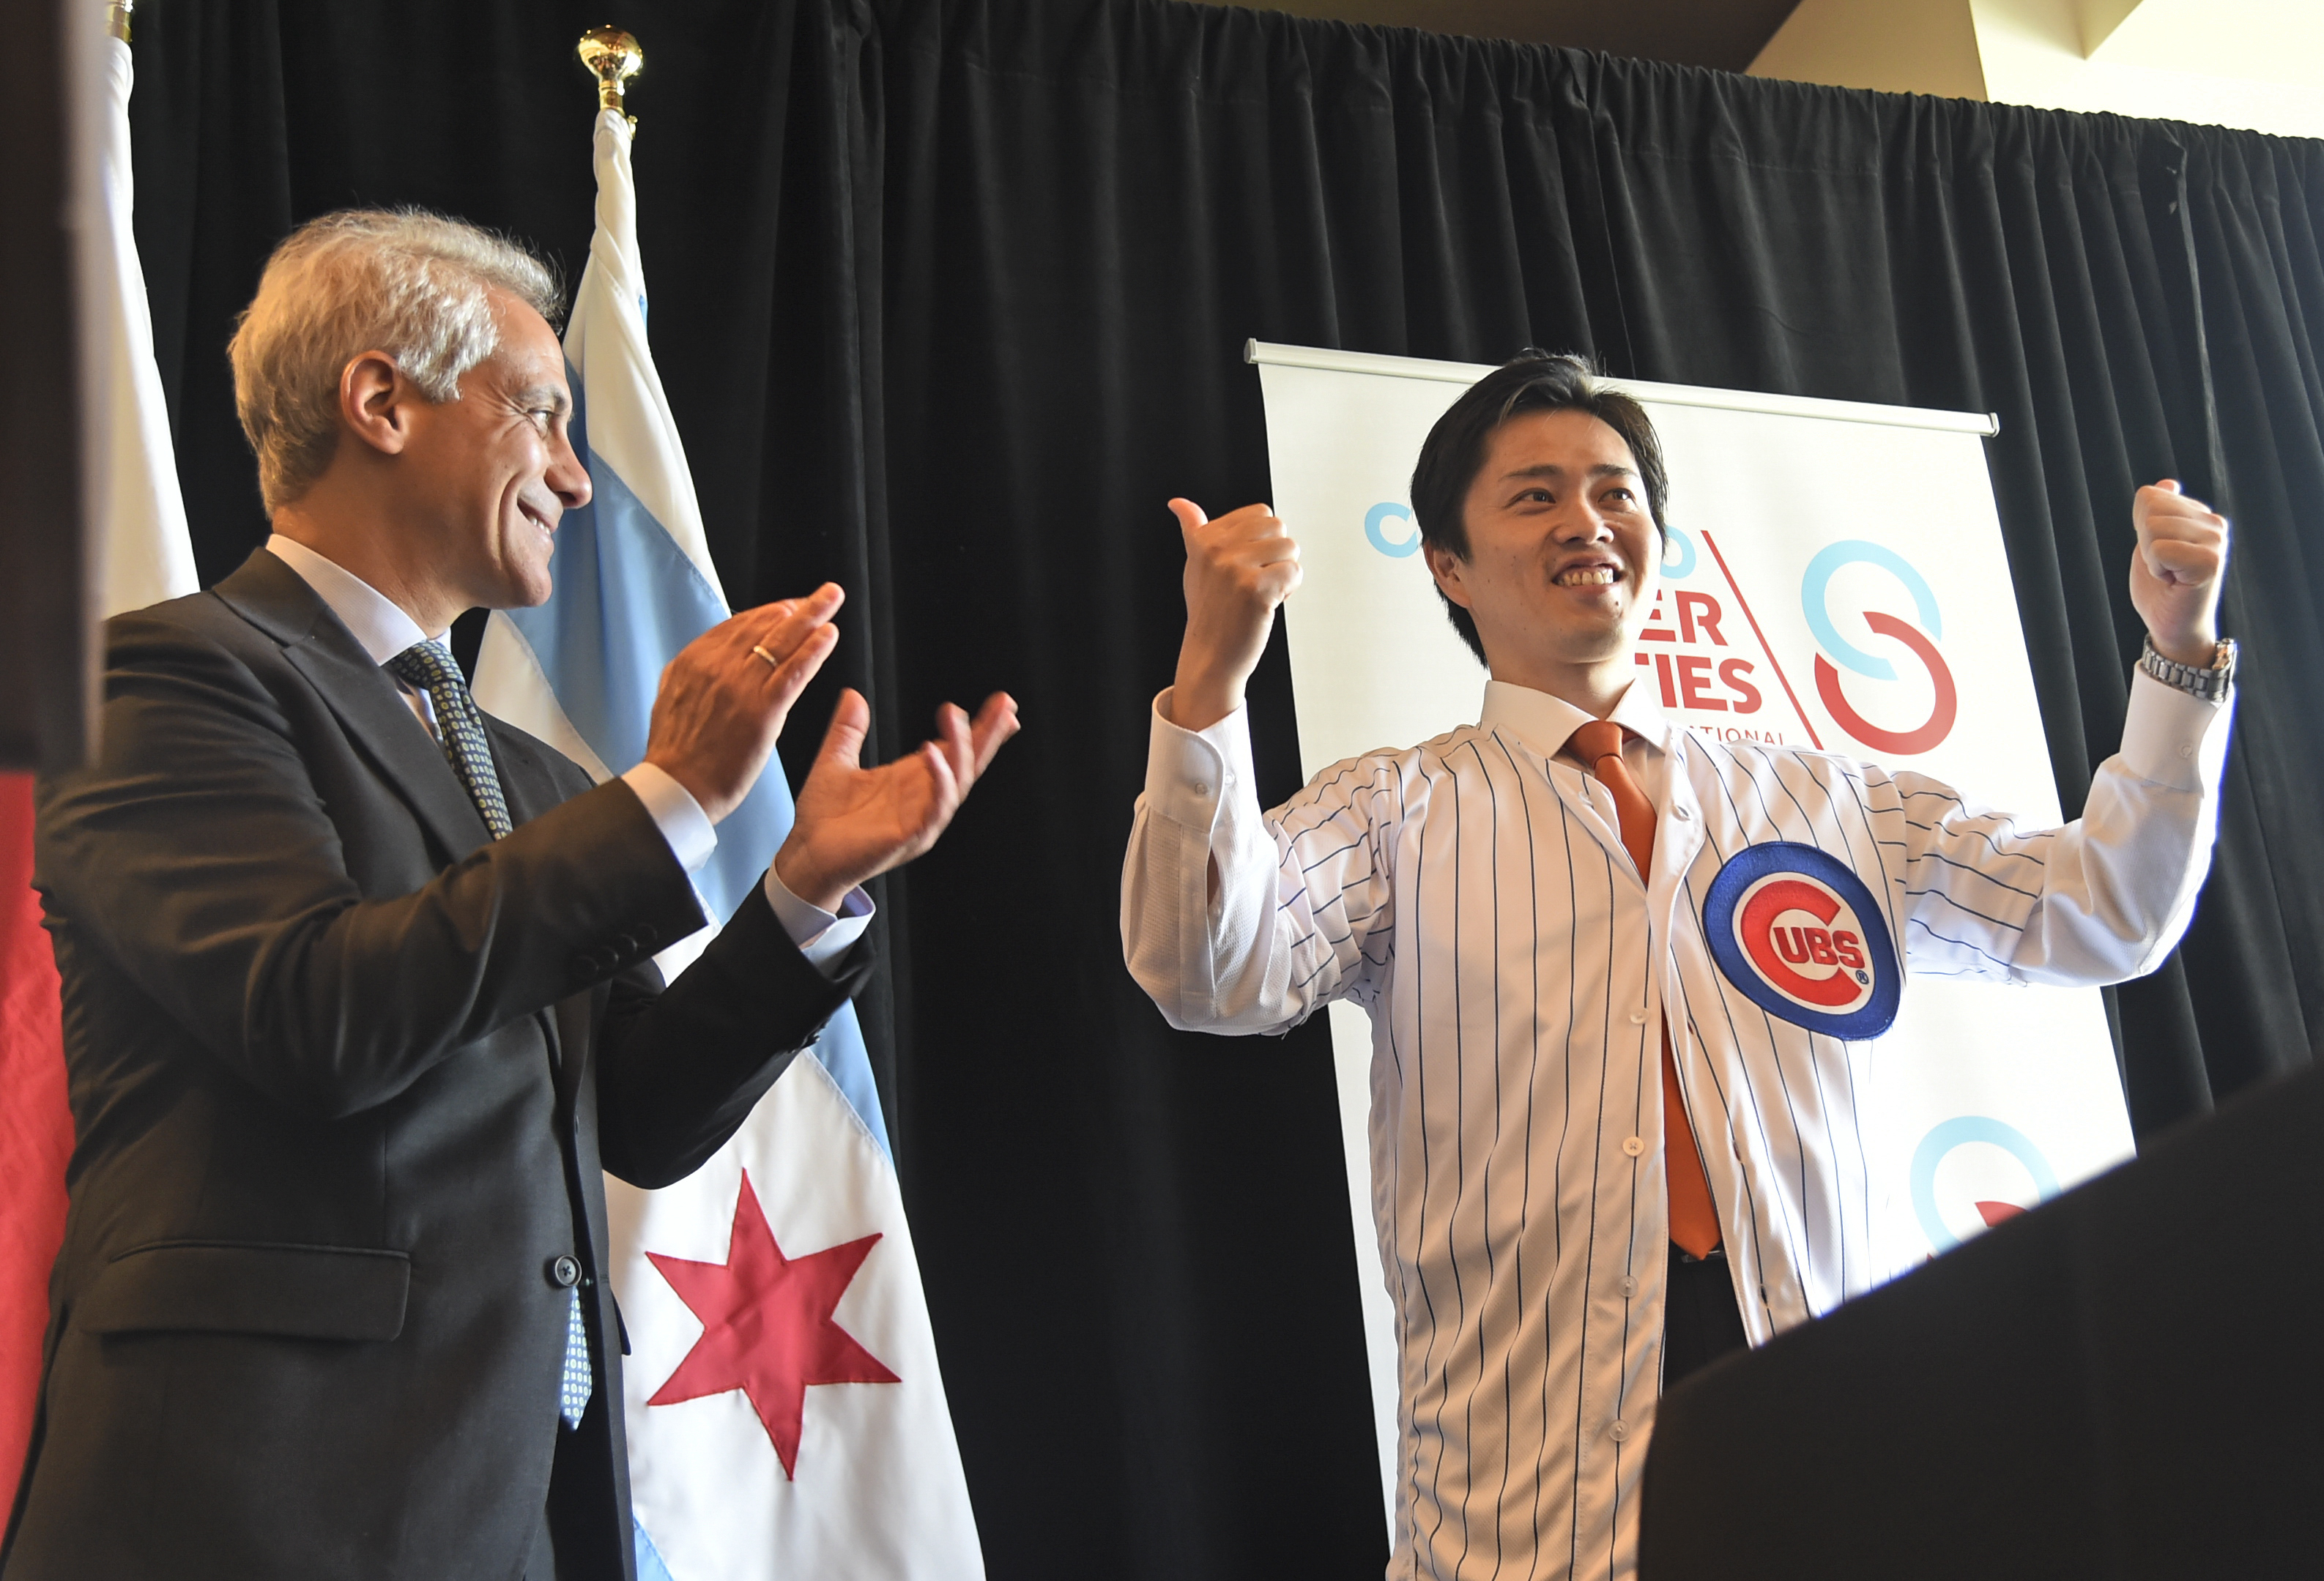 Osaka Mayor Hirofumi Yoshimura visited Chicago in 2018 and met with then-Mayor Rahm Emanuel. Here, Yoshimura shows off his new Cubs jersey.